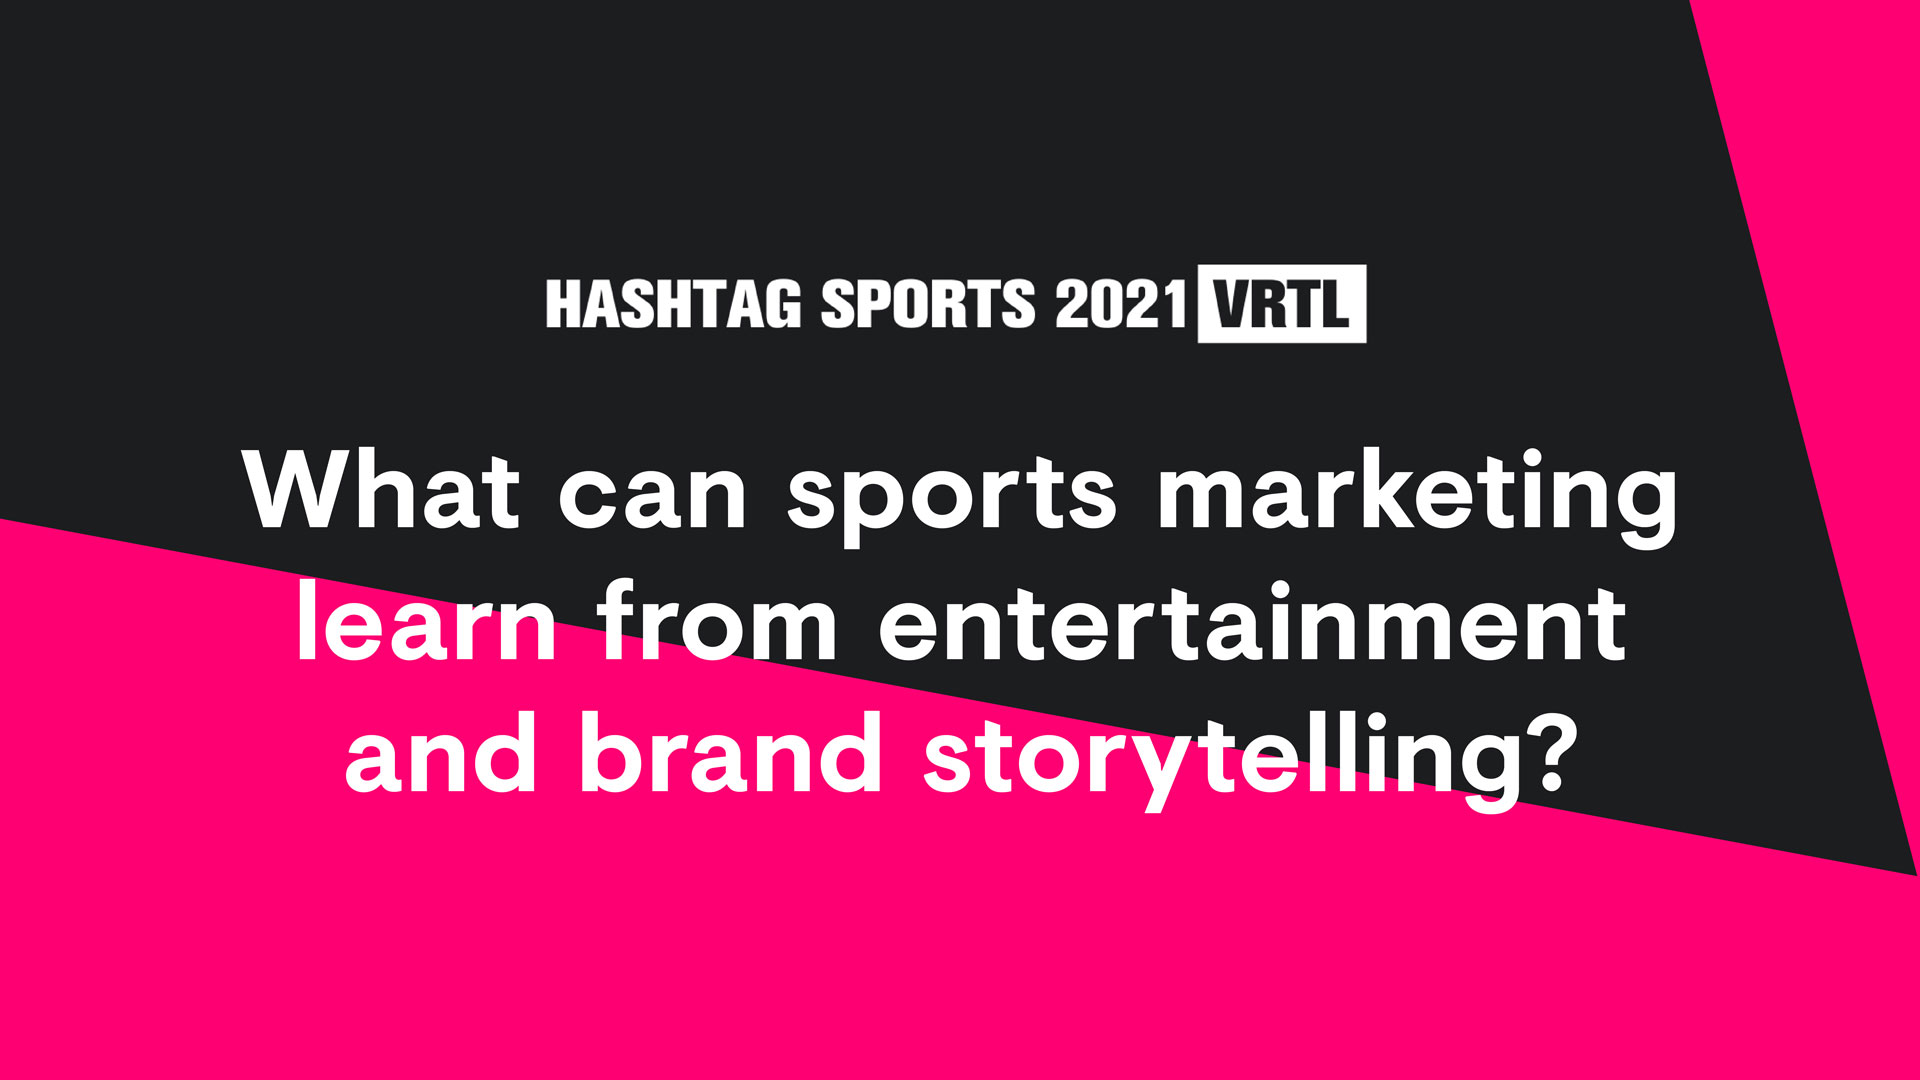 What can sports marketing learn from entertainment and brand storytelling?